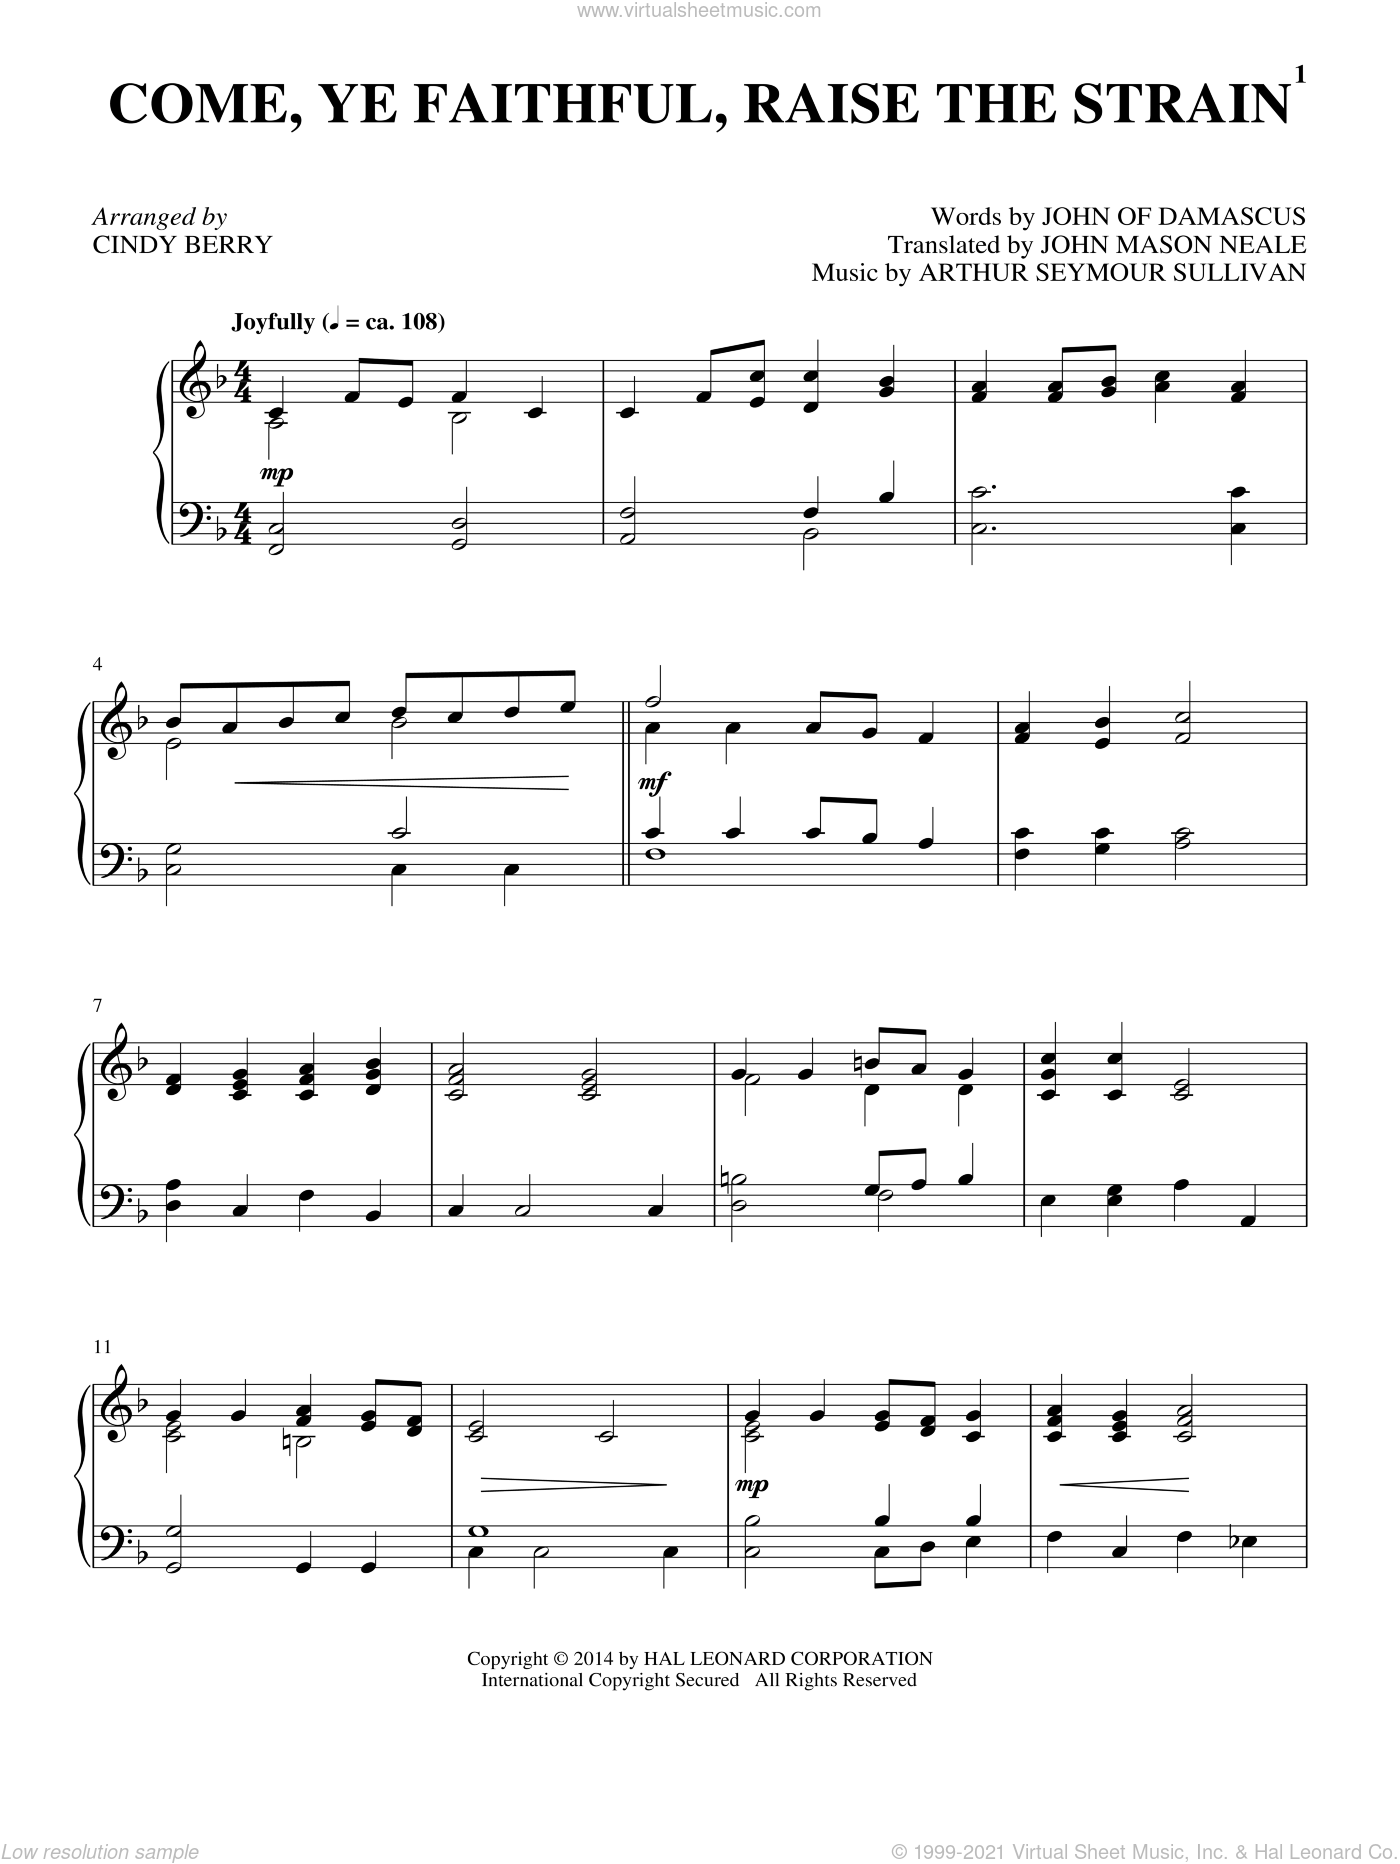 Come, Ye Faithful, Raise The Strain sheet music for piano solo by John Mason Neale, Cindy Berry, Arthur Sullivan and John of Damascus, intermediate skill level